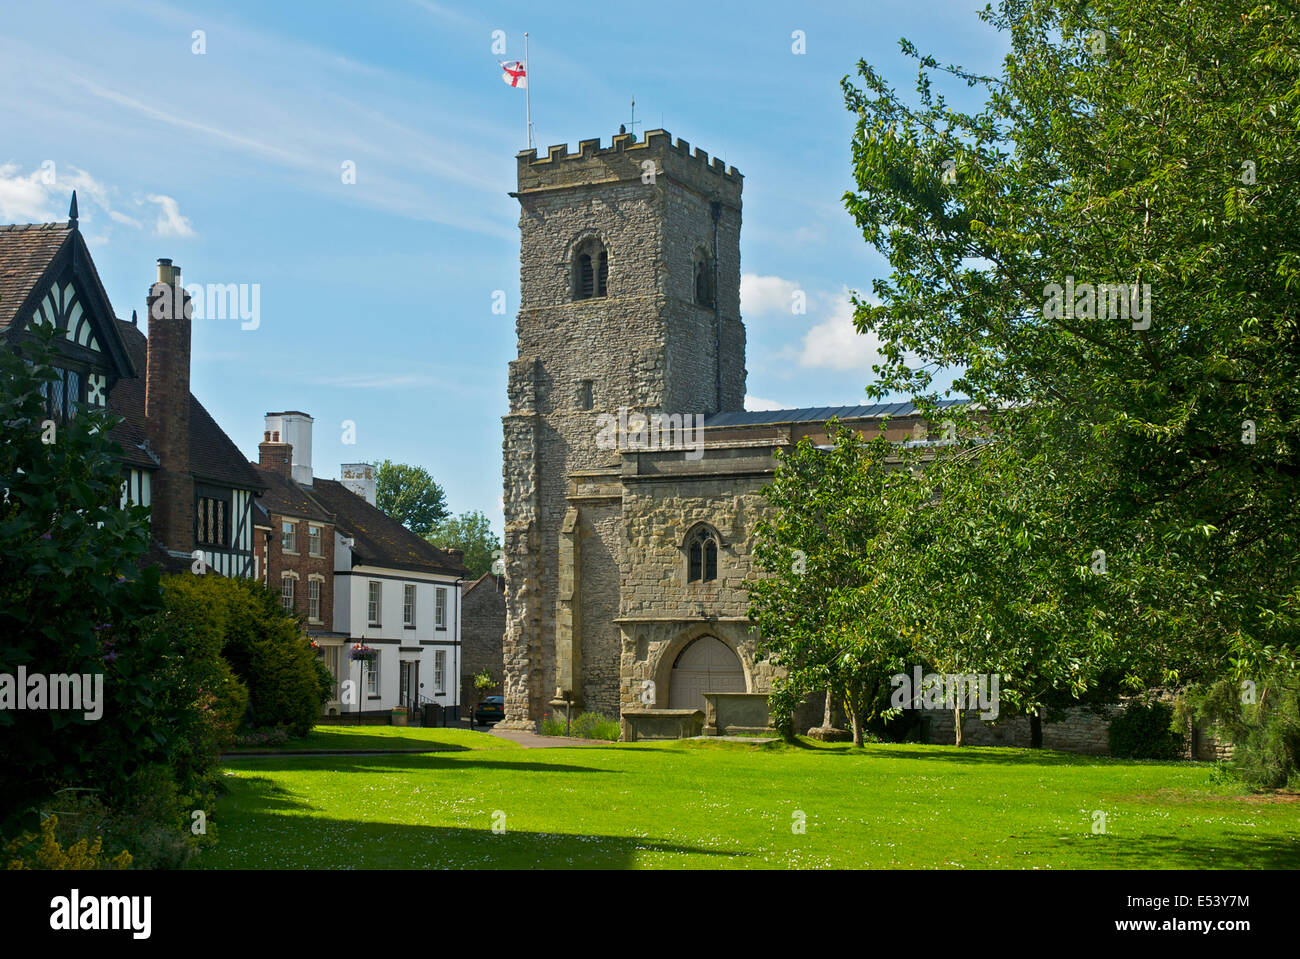 The parish church of the Holy Trinity, Much Wenlock, Shropshire, England UK - Stock Image